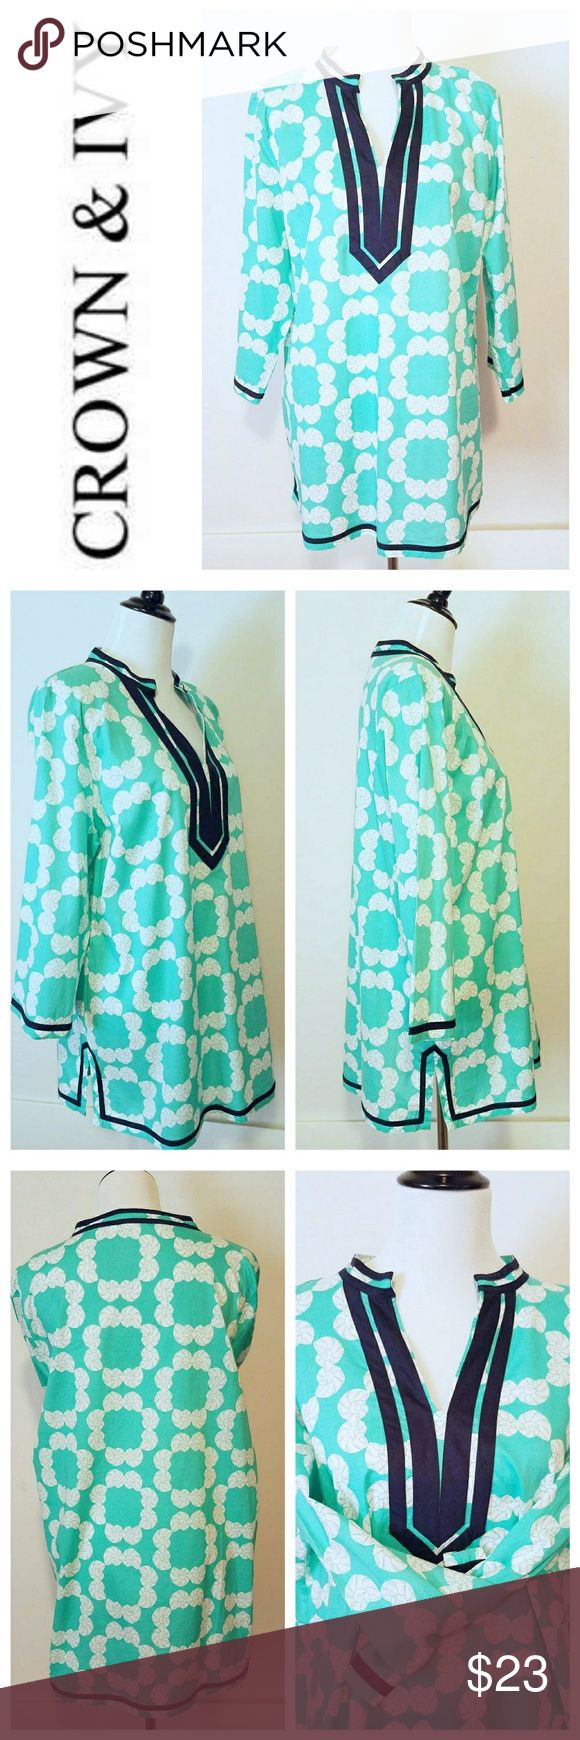 """NWOT - Crown & Ivy Summerwear/Swimsuit Cover Up Just in time for Spring this, adorable CROWN & IVY  oversized cover up is great for everything!  Pop it on over a swim suit or, long enough to wear as a cute tunic dress.  Throw on with jeans or leggings to complete the look. So versatile and fancy! I have too many! 100% soft cotton. Measurements - Bust 42"""", Waist 32"""", Hips 44"""", Sleeve Length 20"""", Lenth from mid back tagline to hem is 31""""~ All items come freshly laundered or dry cleaned unless…"""